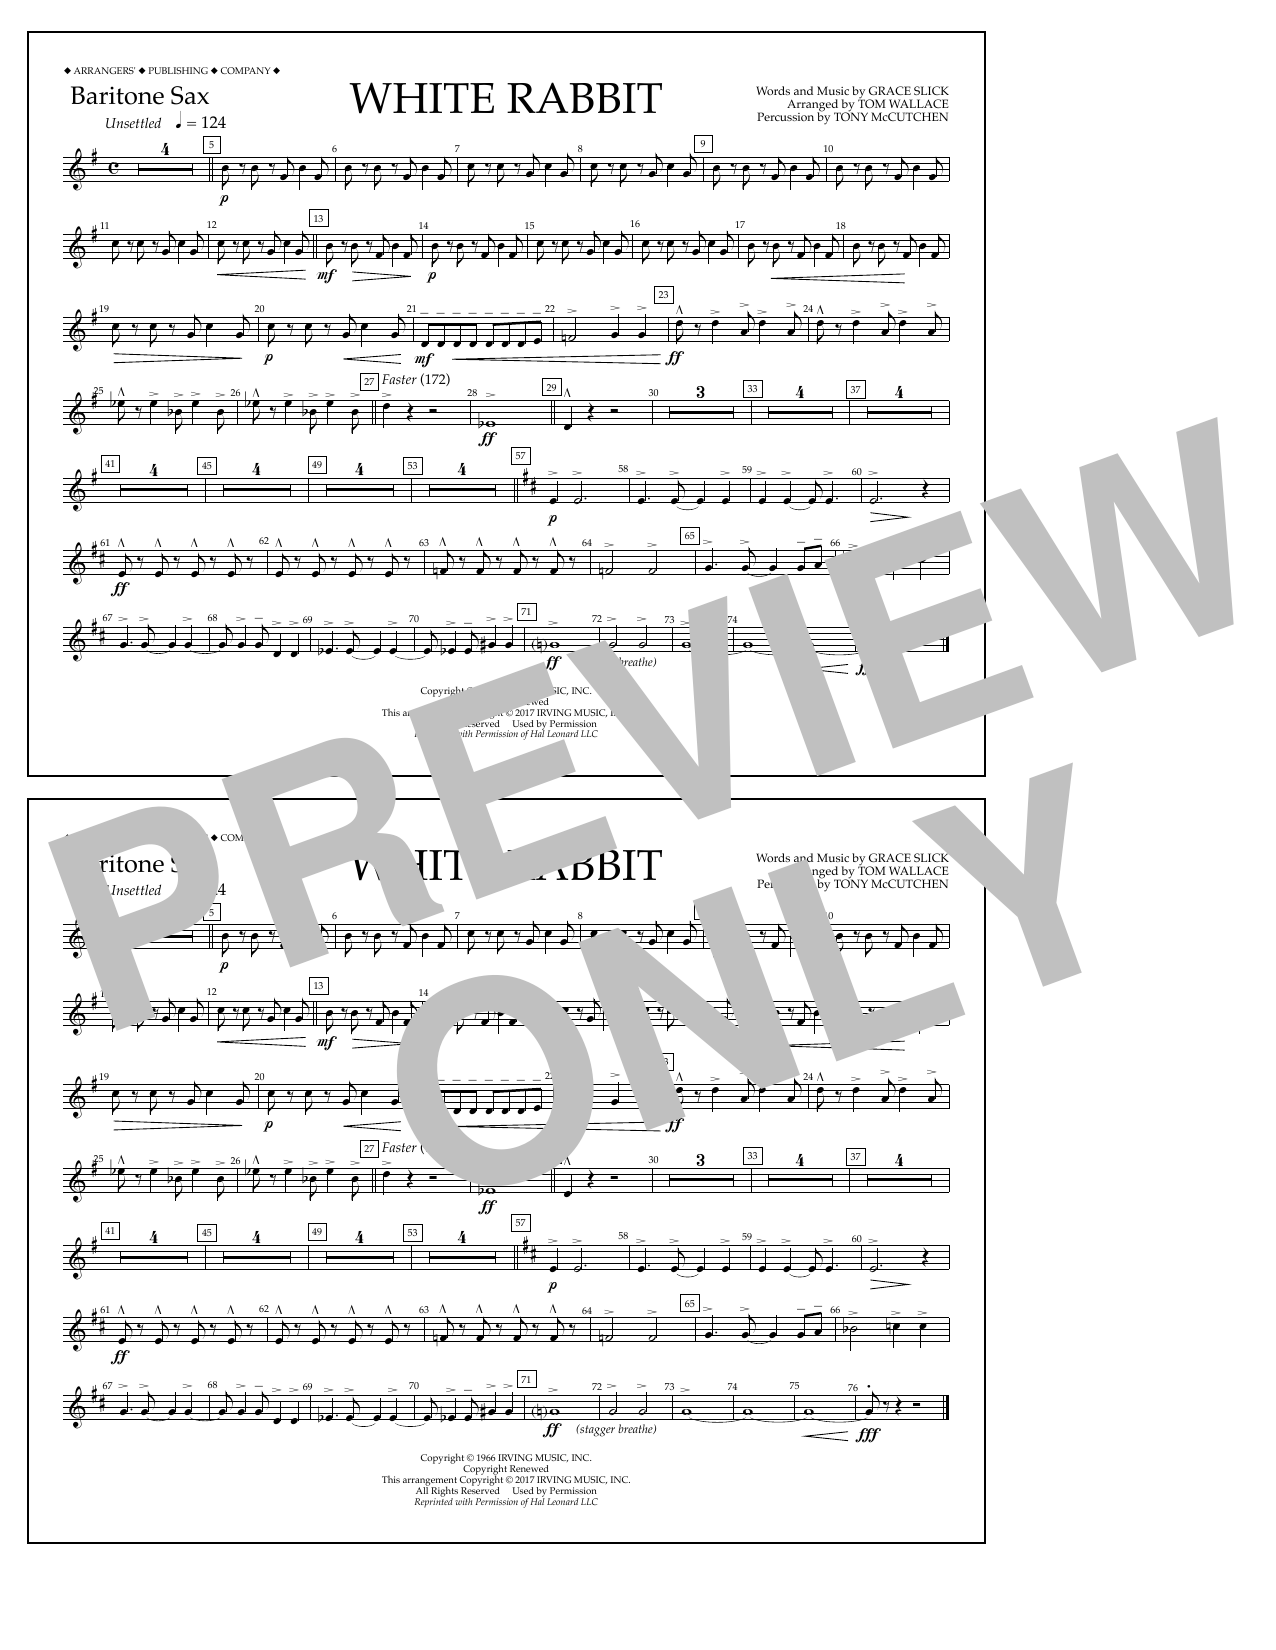 White Rabbit - Baritone Sax Sheet Music